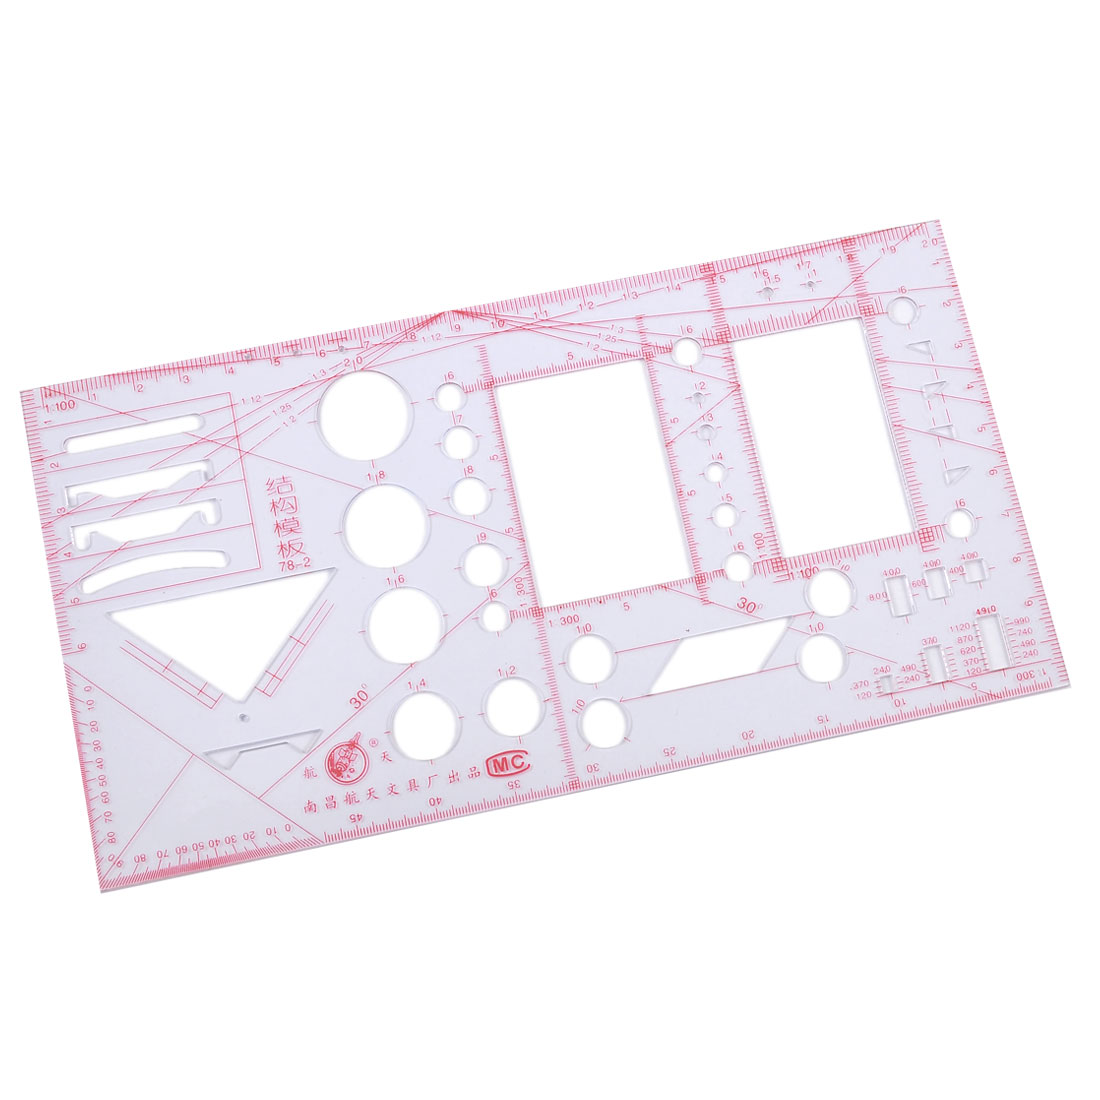 Red Scale Rectangle Clear Plastic Construction Template Ruler Measure Tool